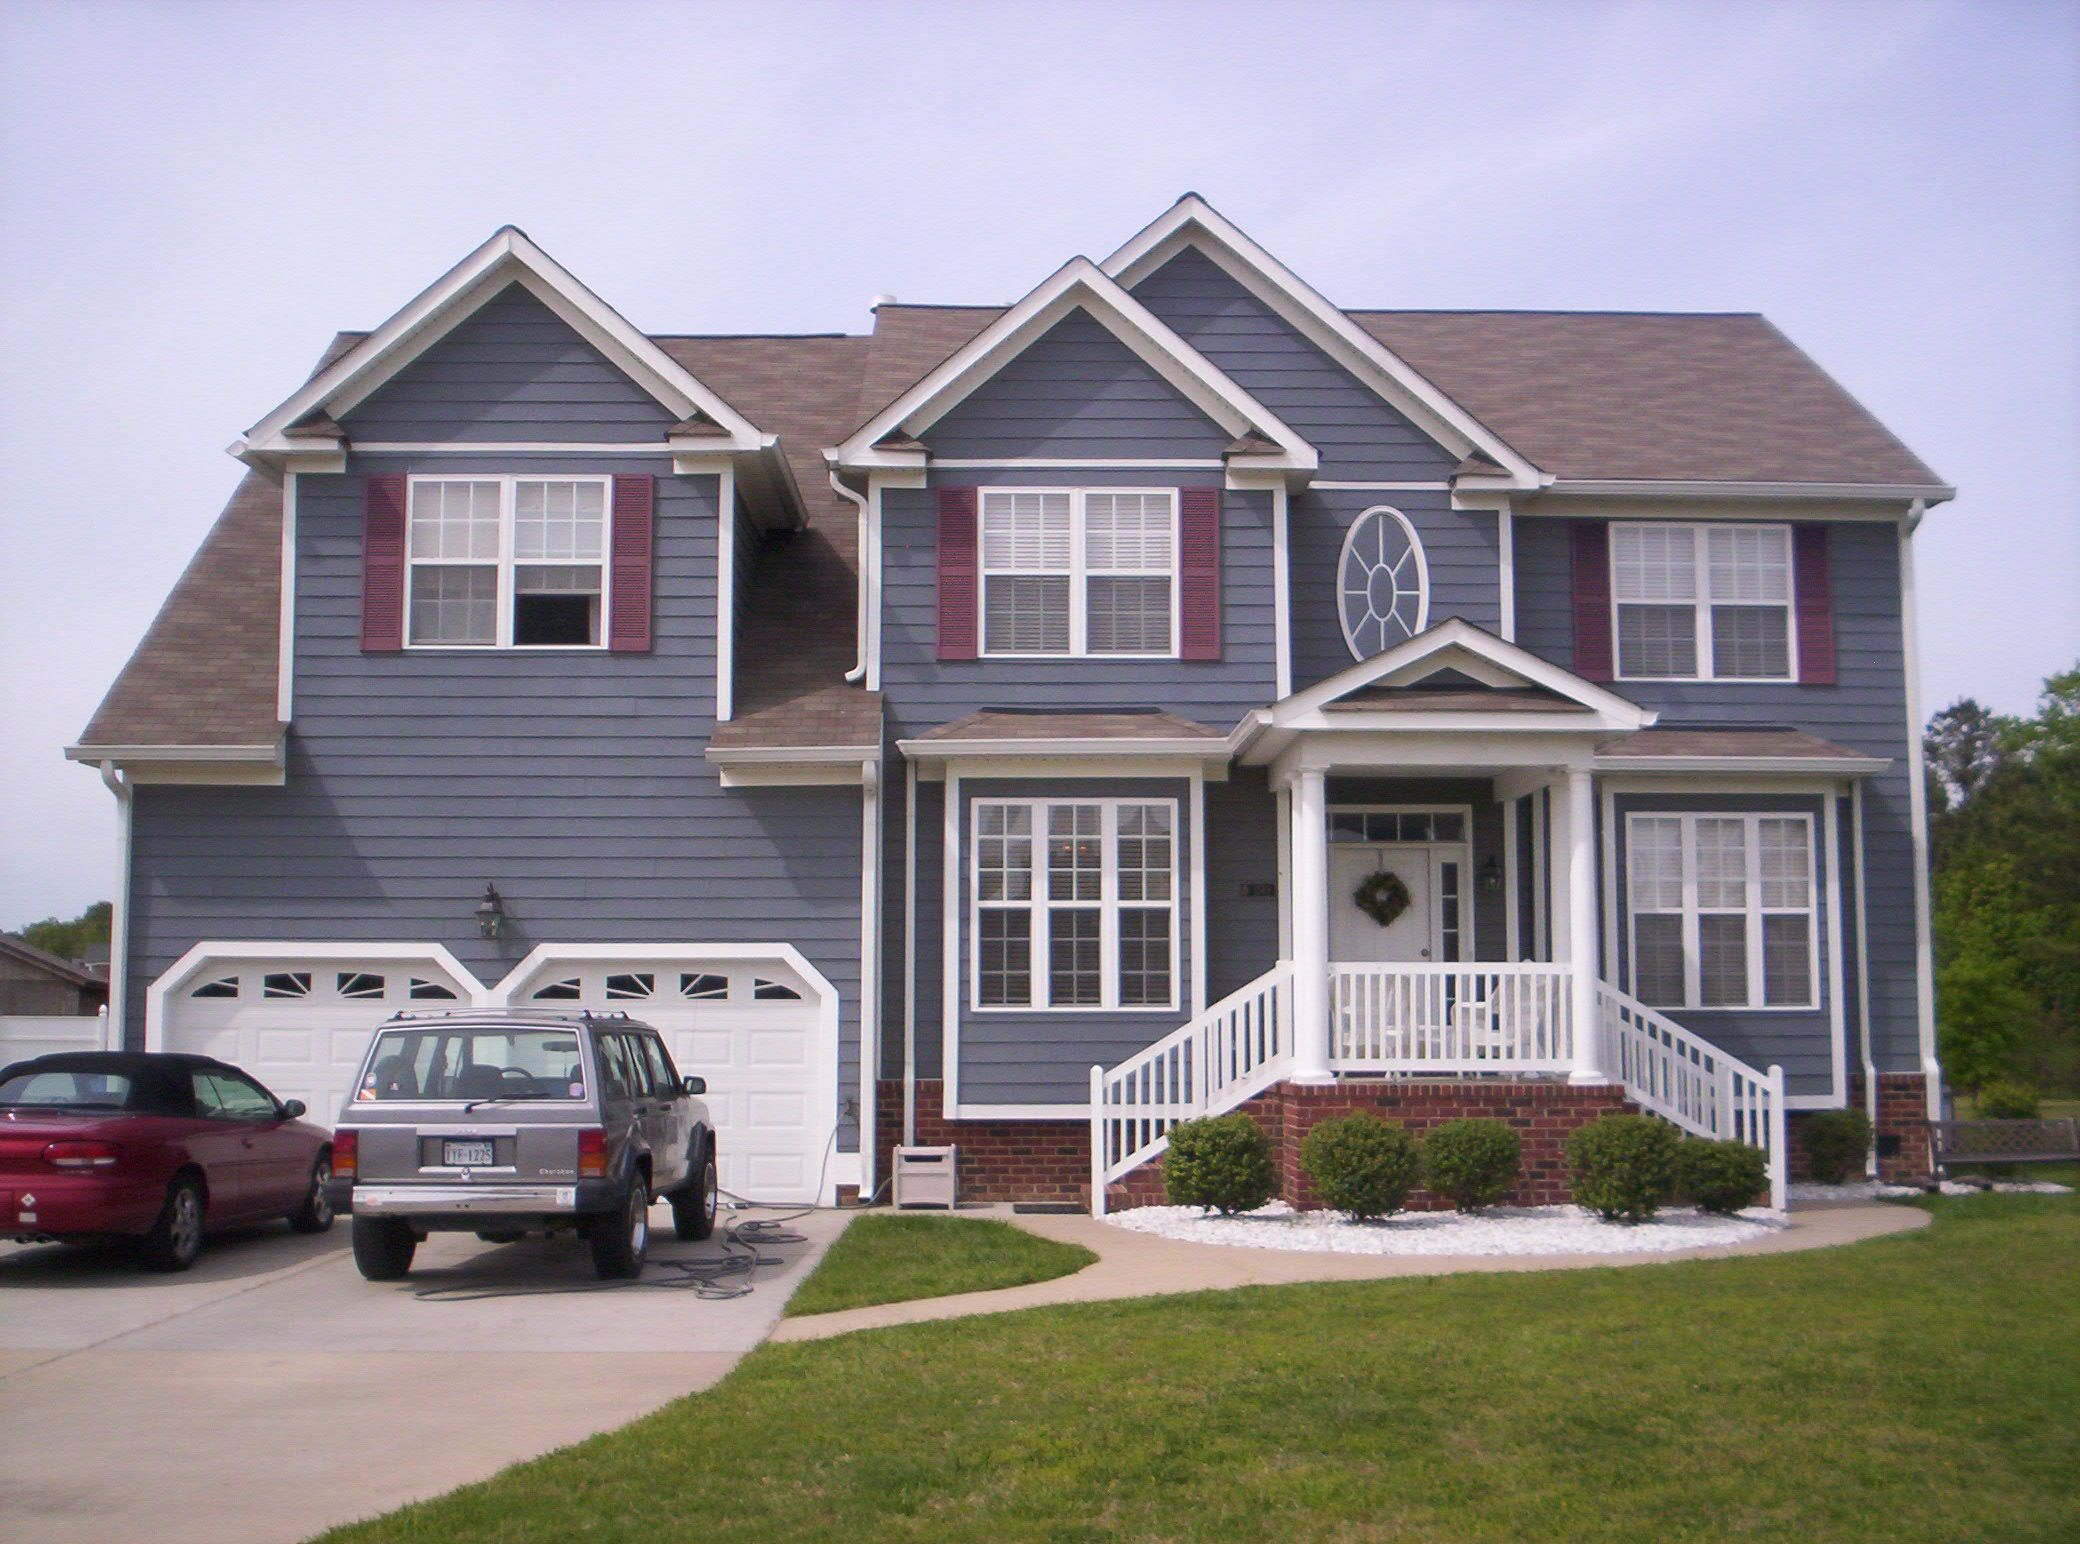 Terrific Houses Painted Gray Inspiring Largest Home Design Picture Inspirations Pitcheantrous